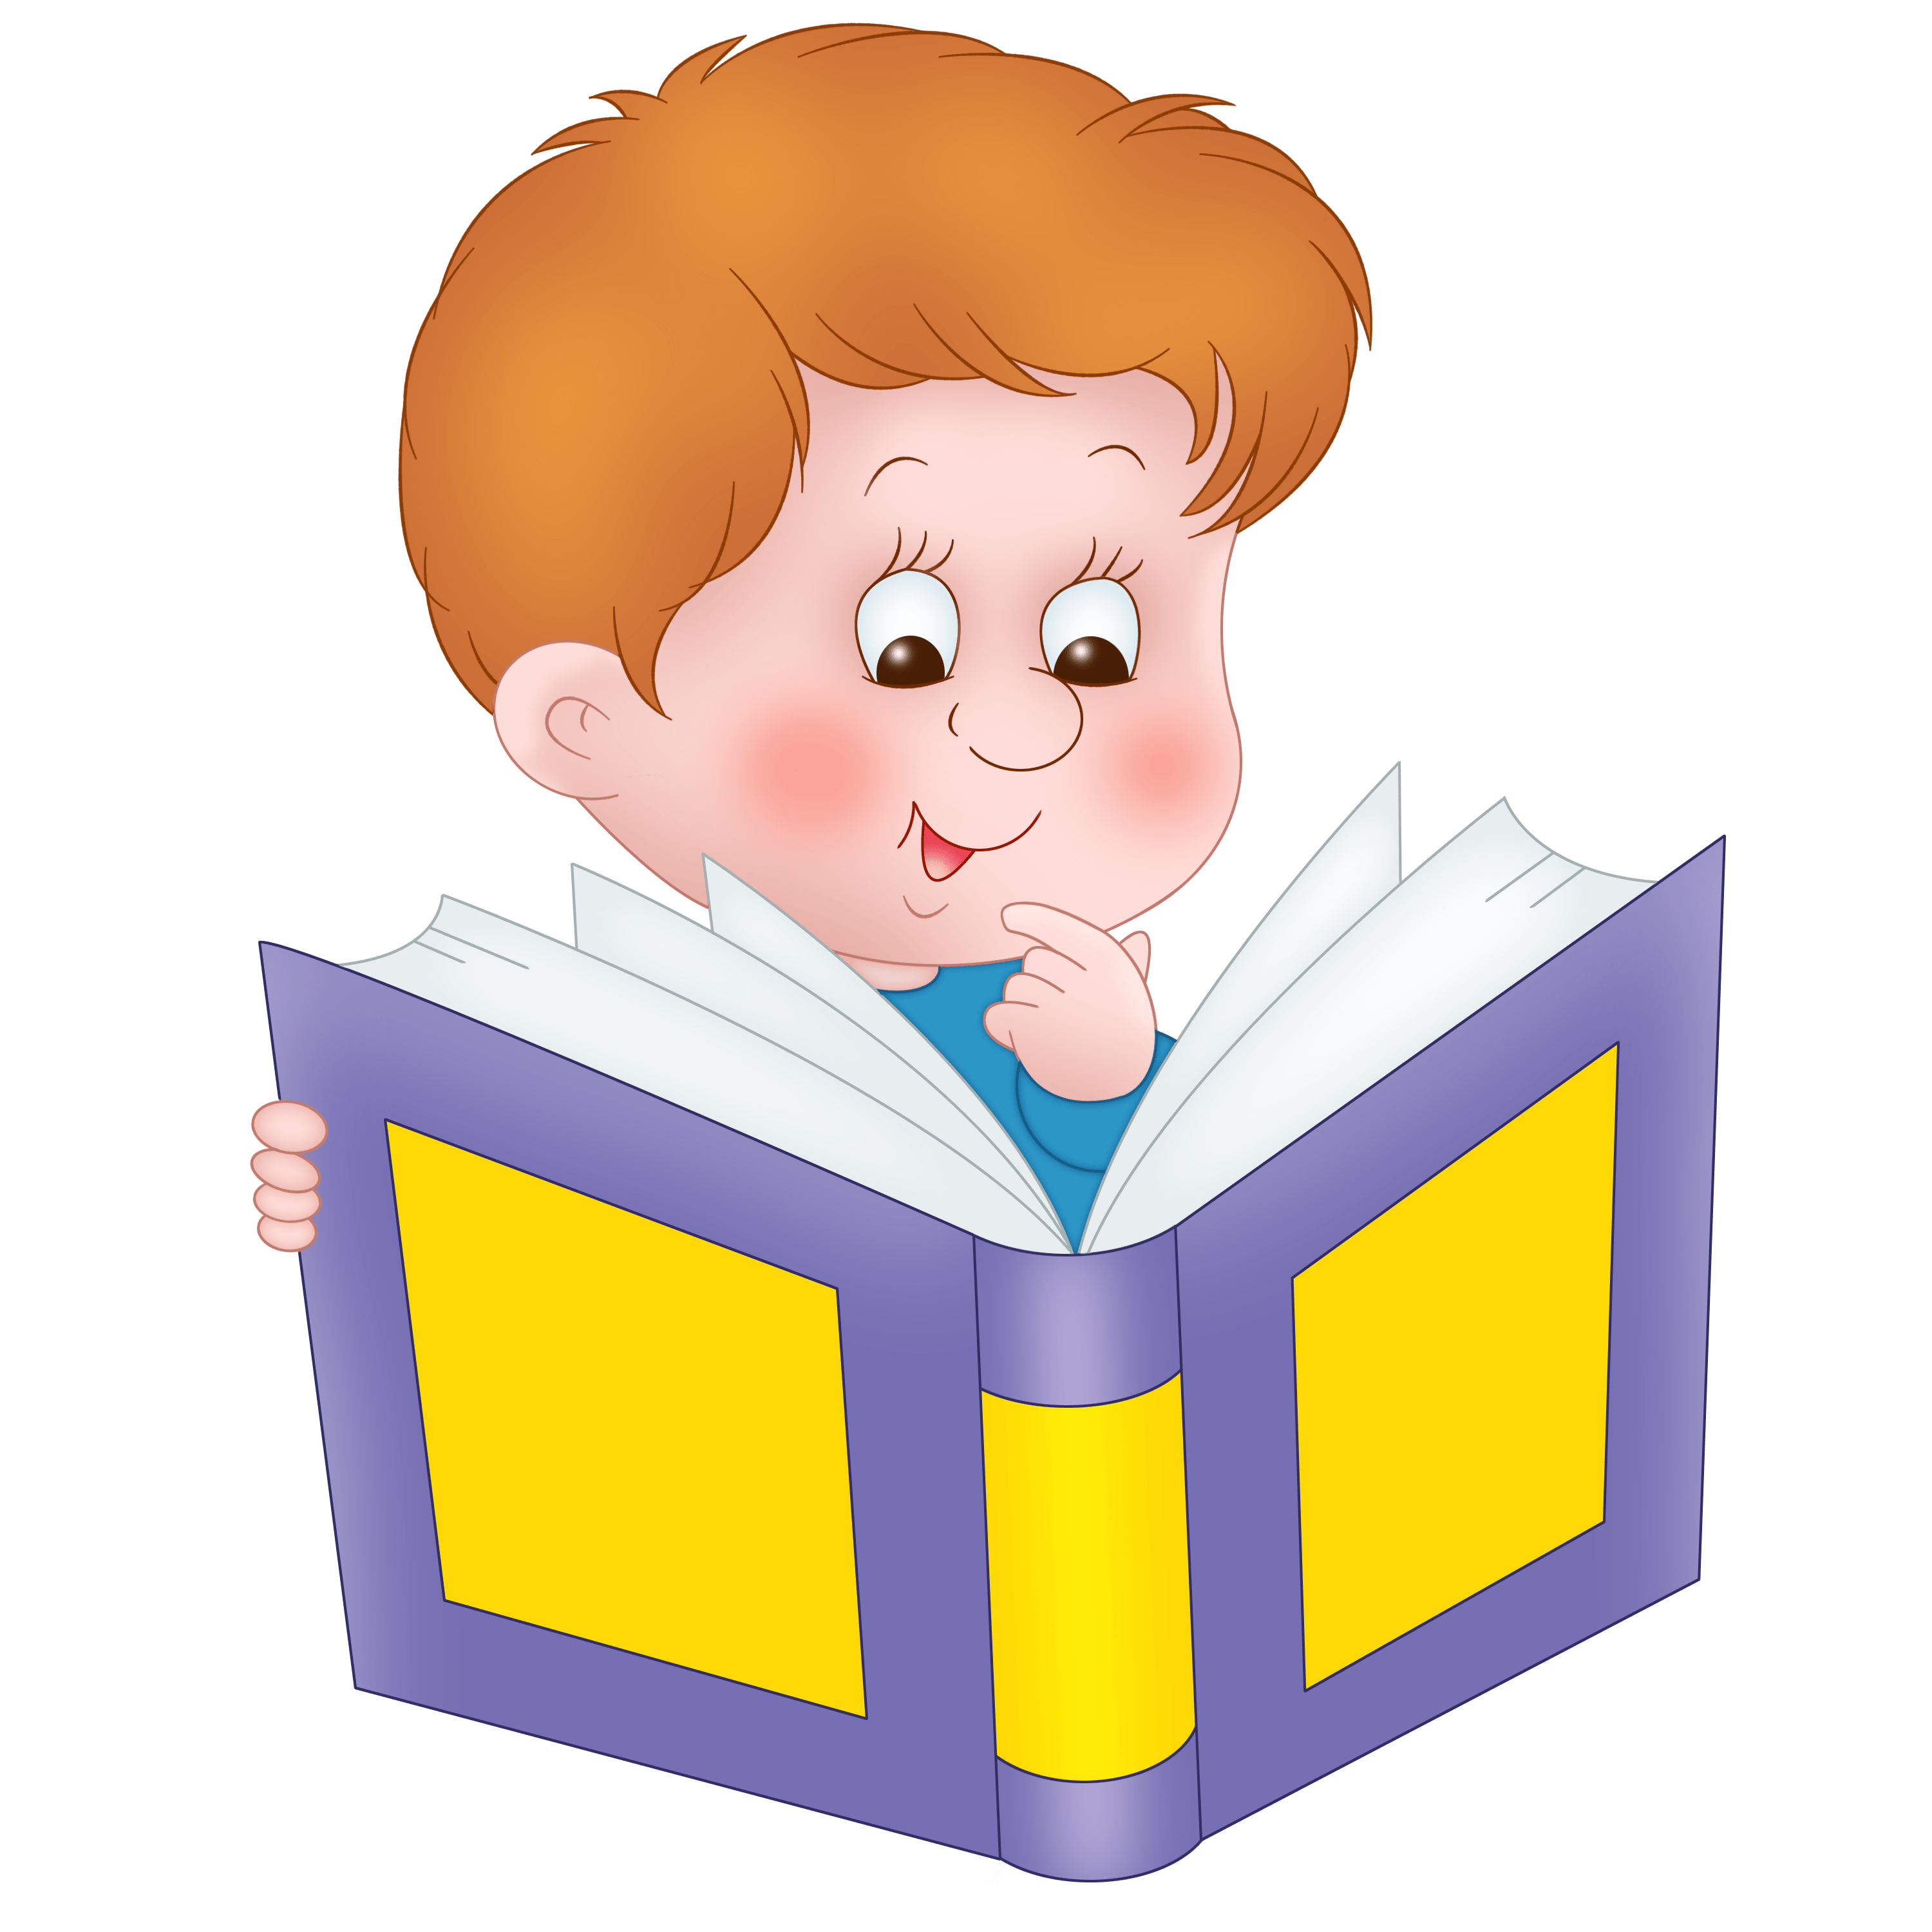 Libros Png List Of Synonyms And Antonyms Of The Word Ninos Leyendo